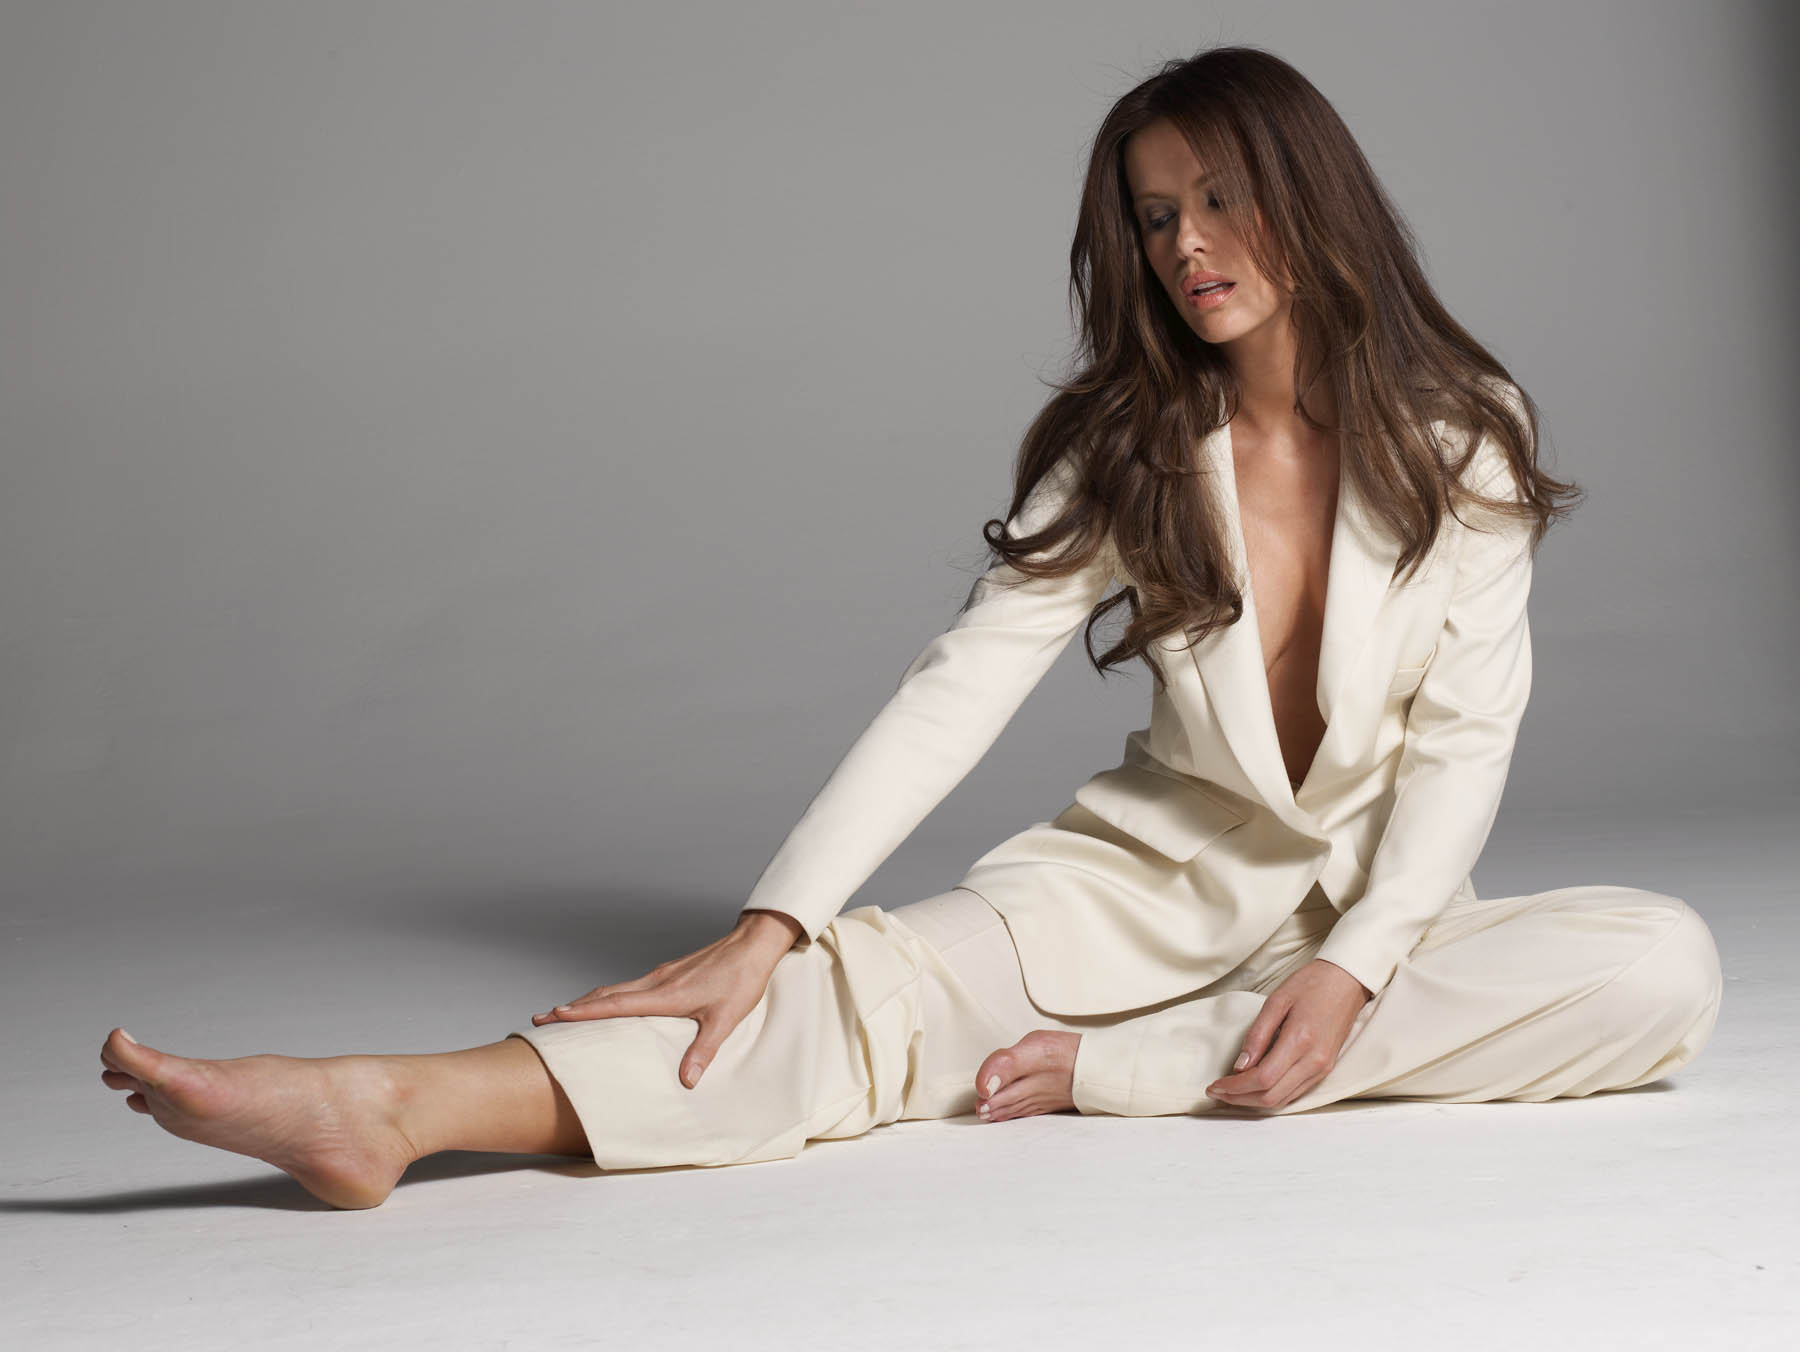 kate beckinsale sexy feet